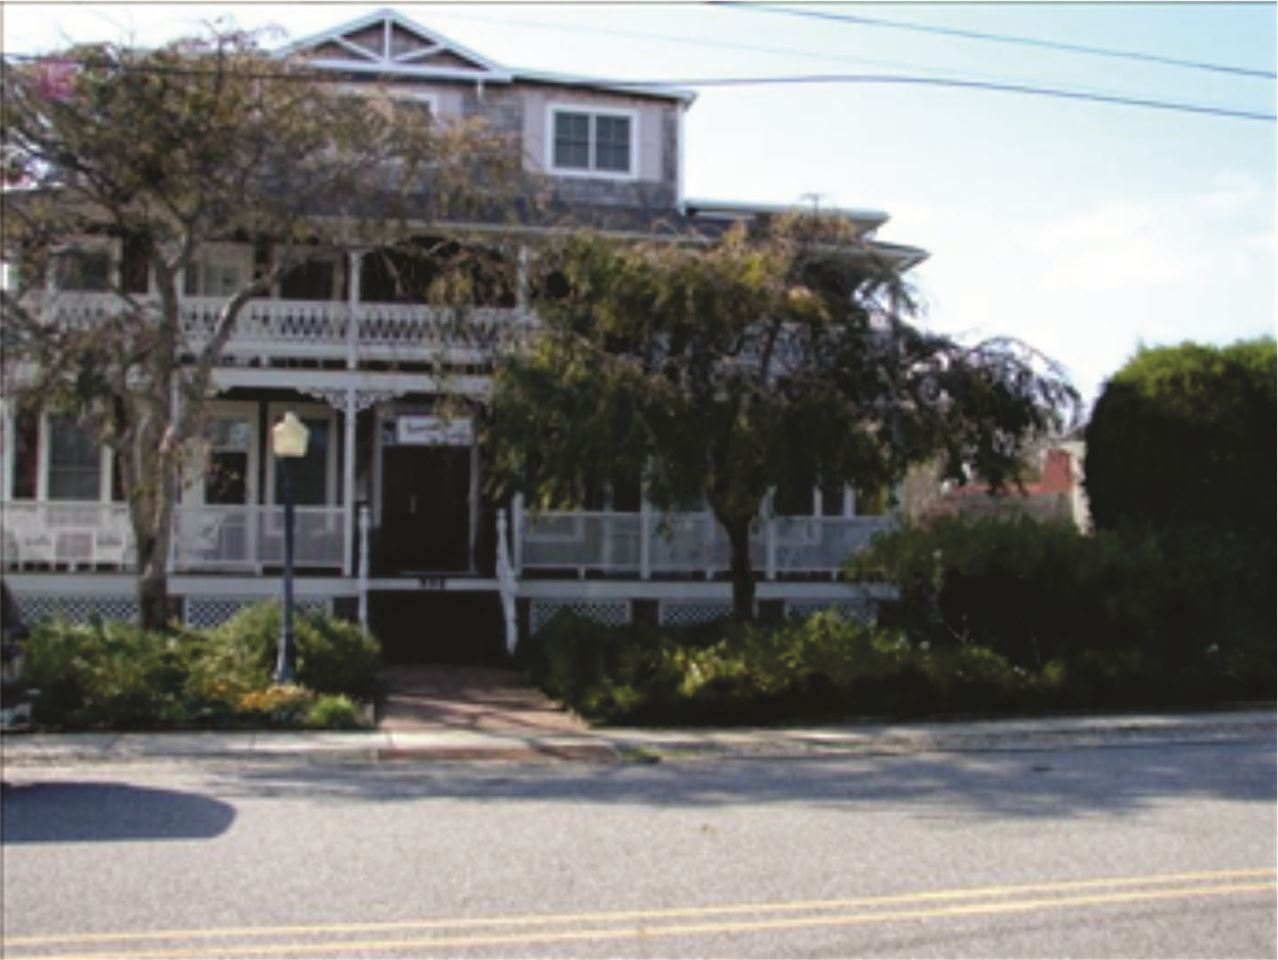 202, Unit 1 Ocean, Cape May Point